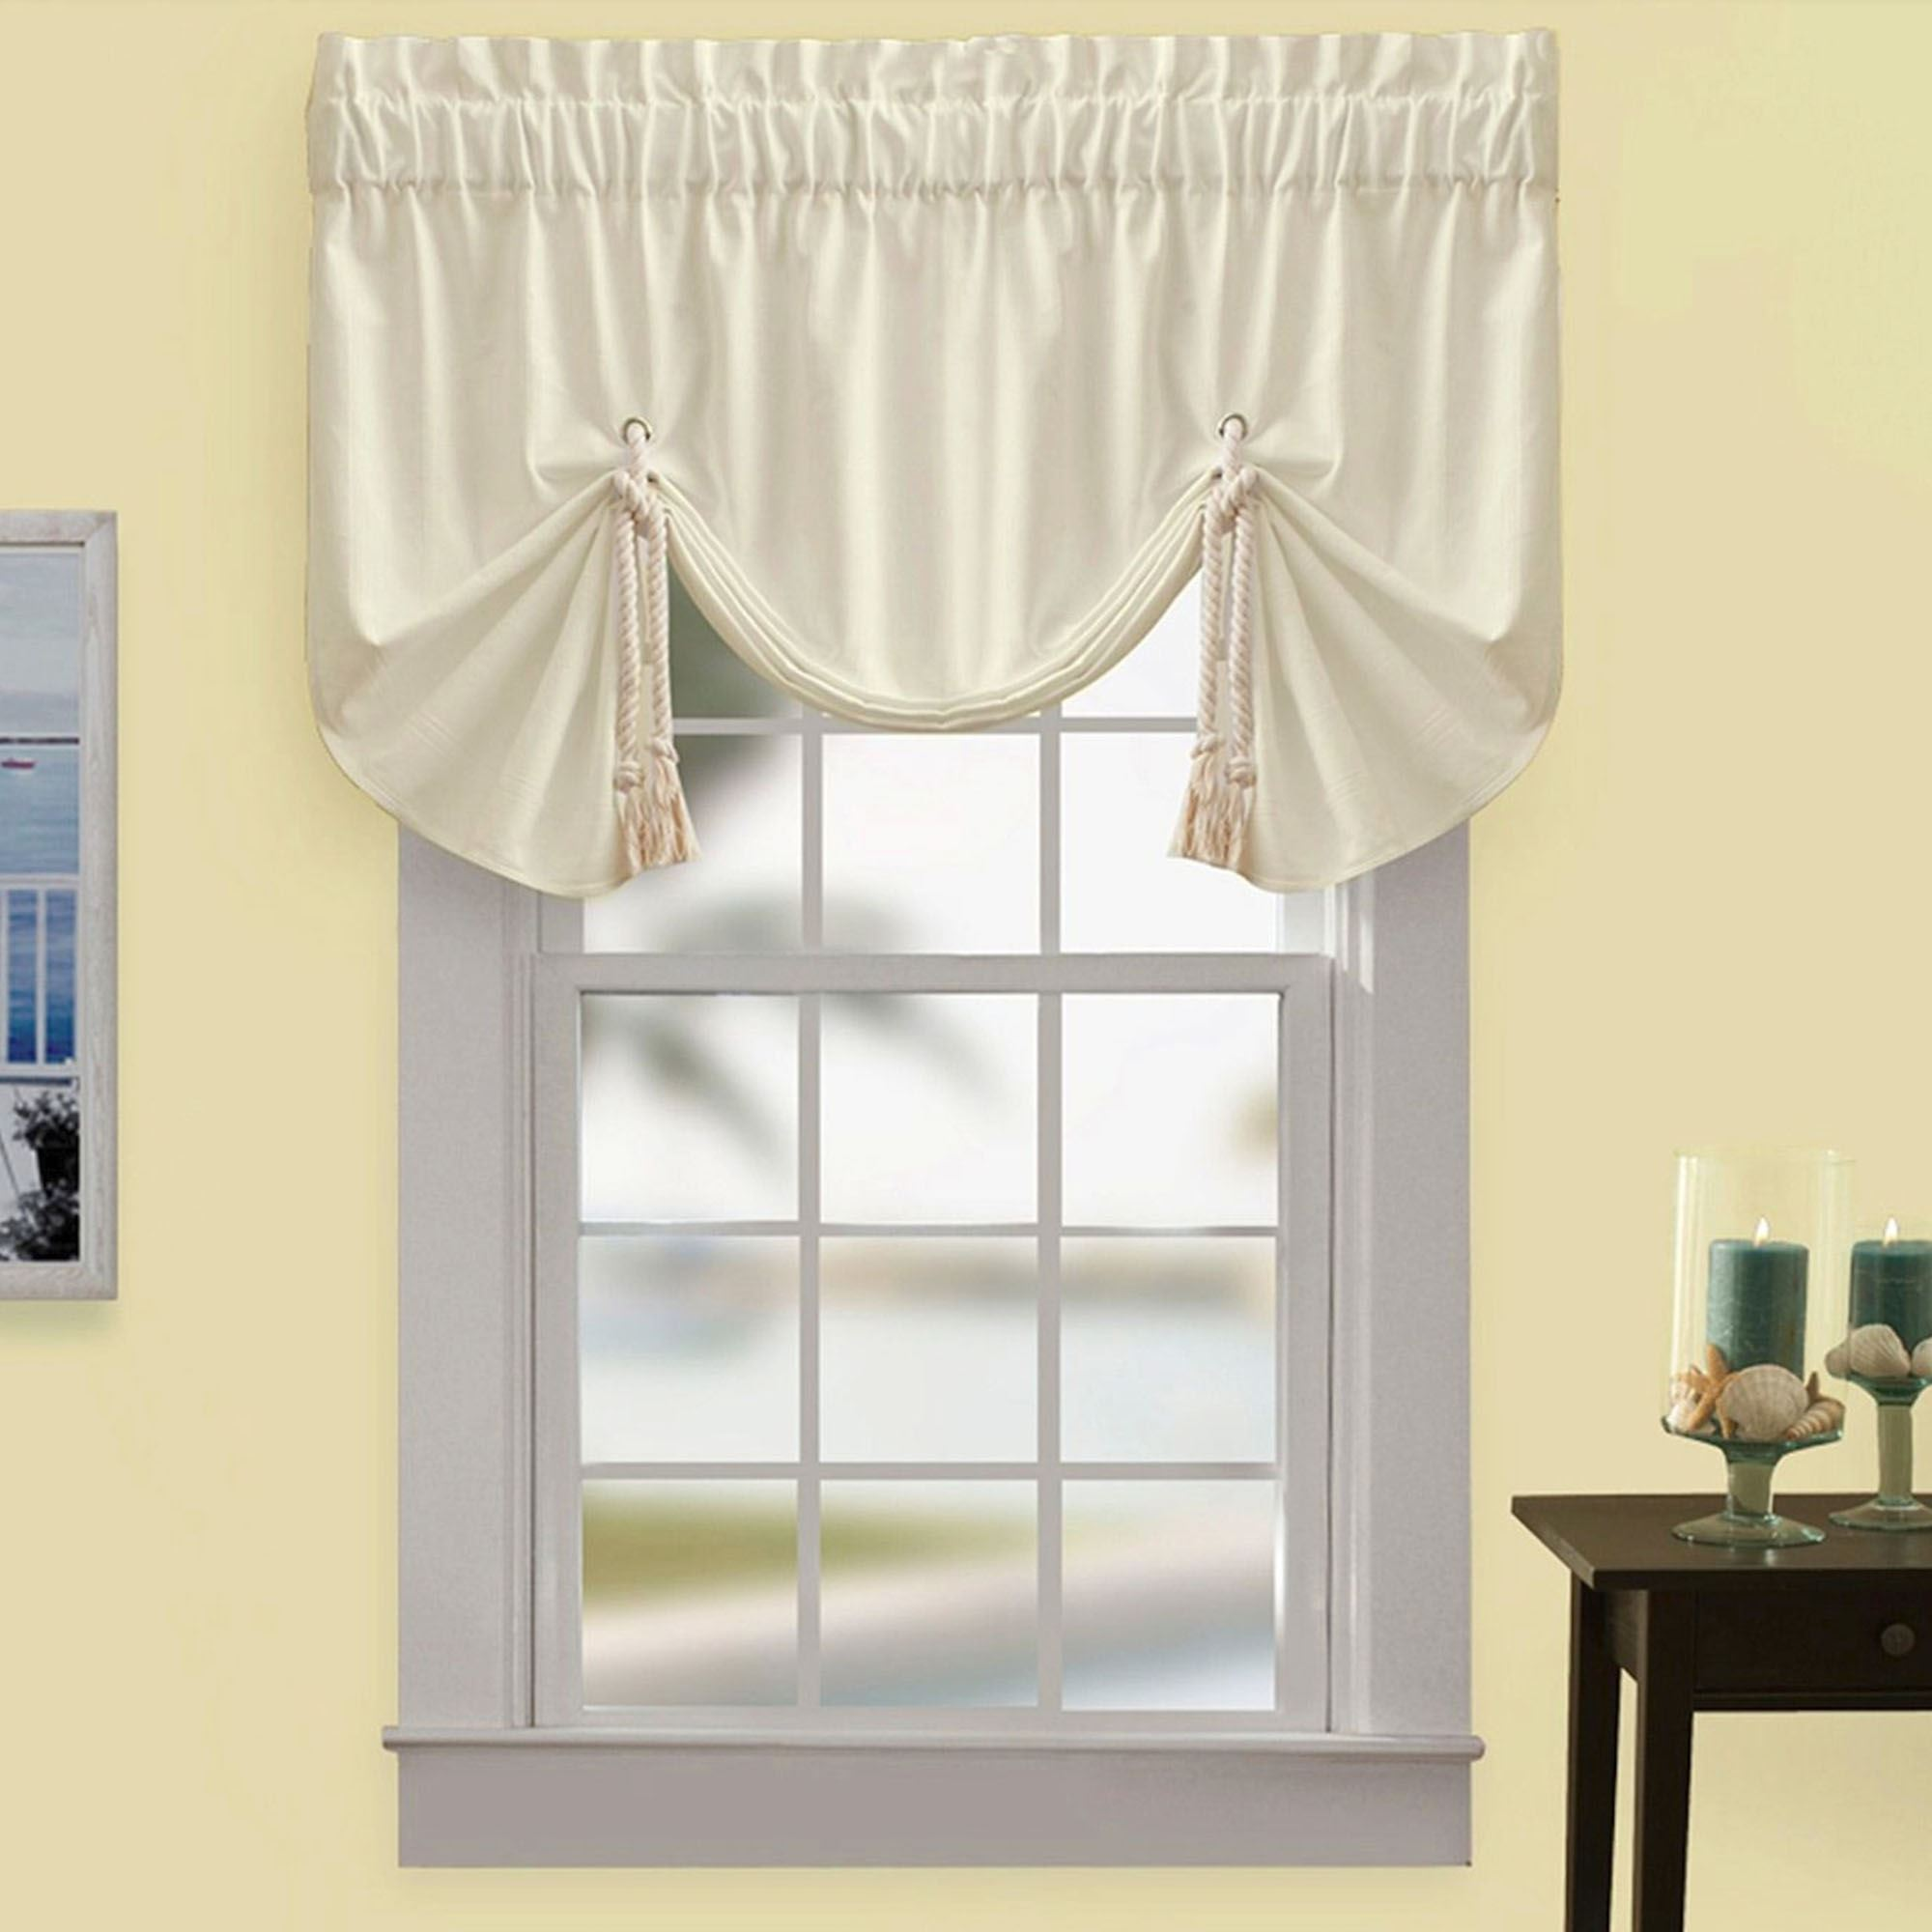 Regalia Sail Tie Up Window Valance by Croscill